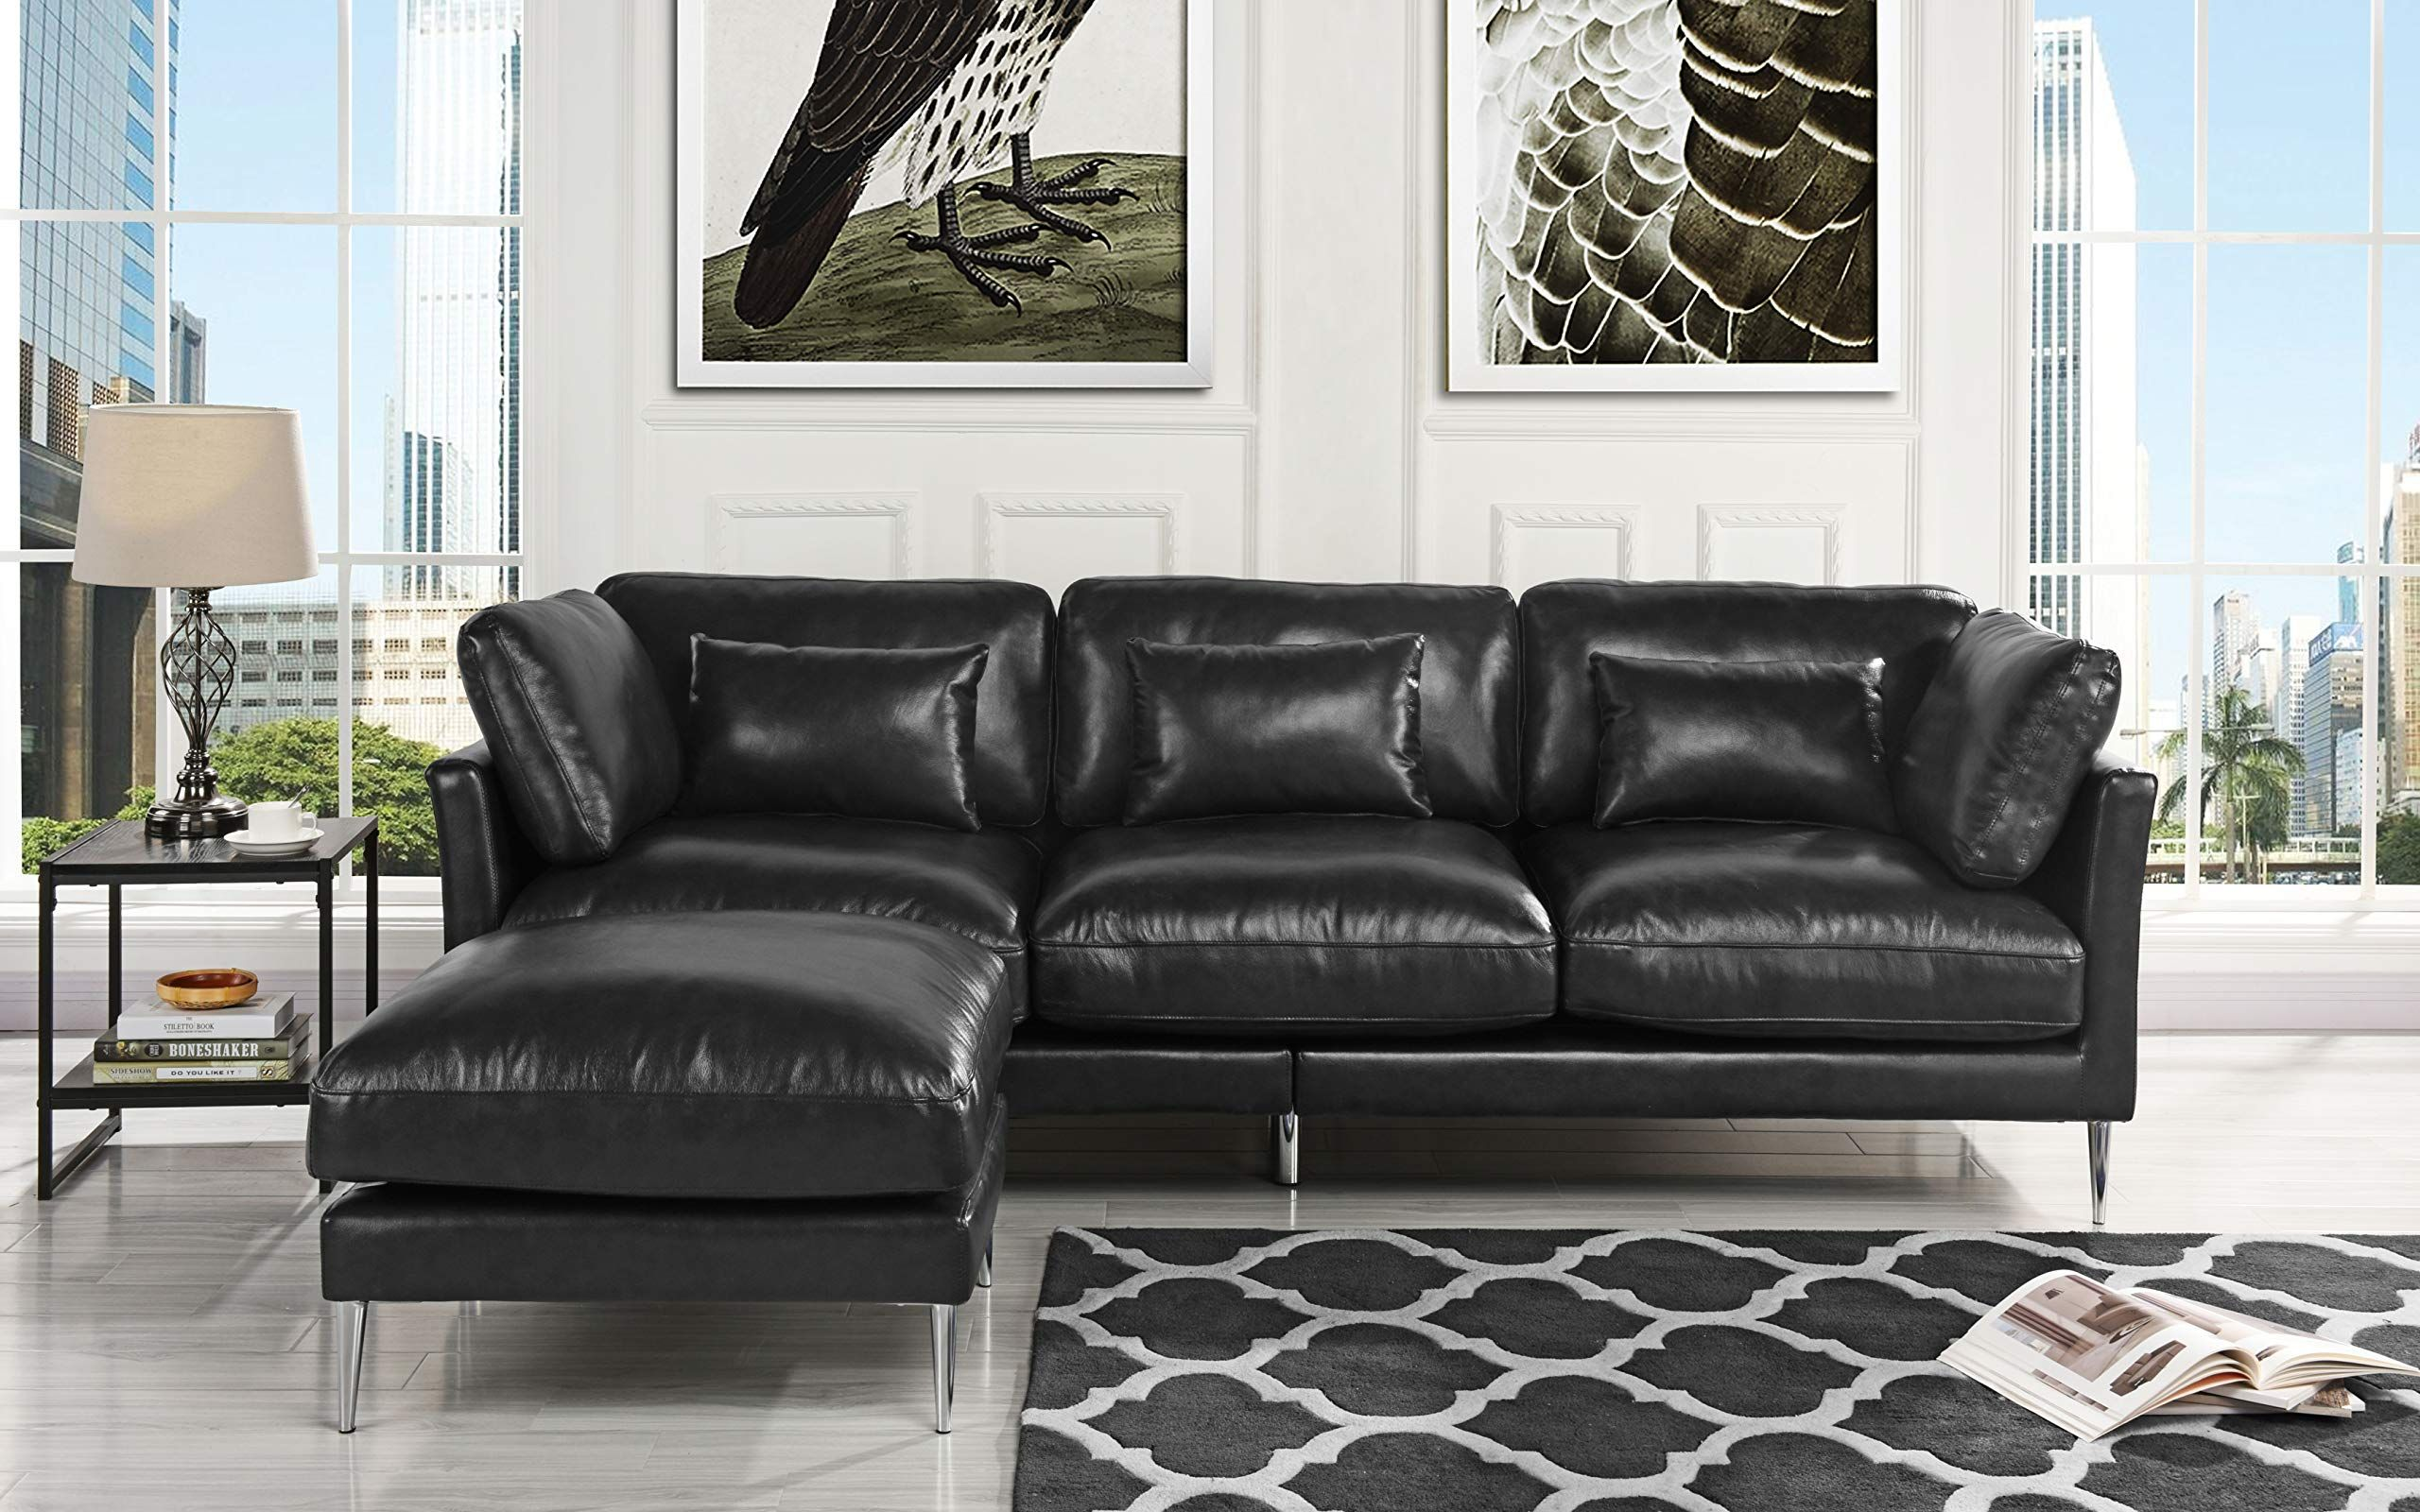 Modern Leather Sectional Sofa L Shape Couch Black Inspect This Remarkable It In 2020 Modern Leather Sectional Sofas Brown Sofa Living Room Classic Sofa Living Room